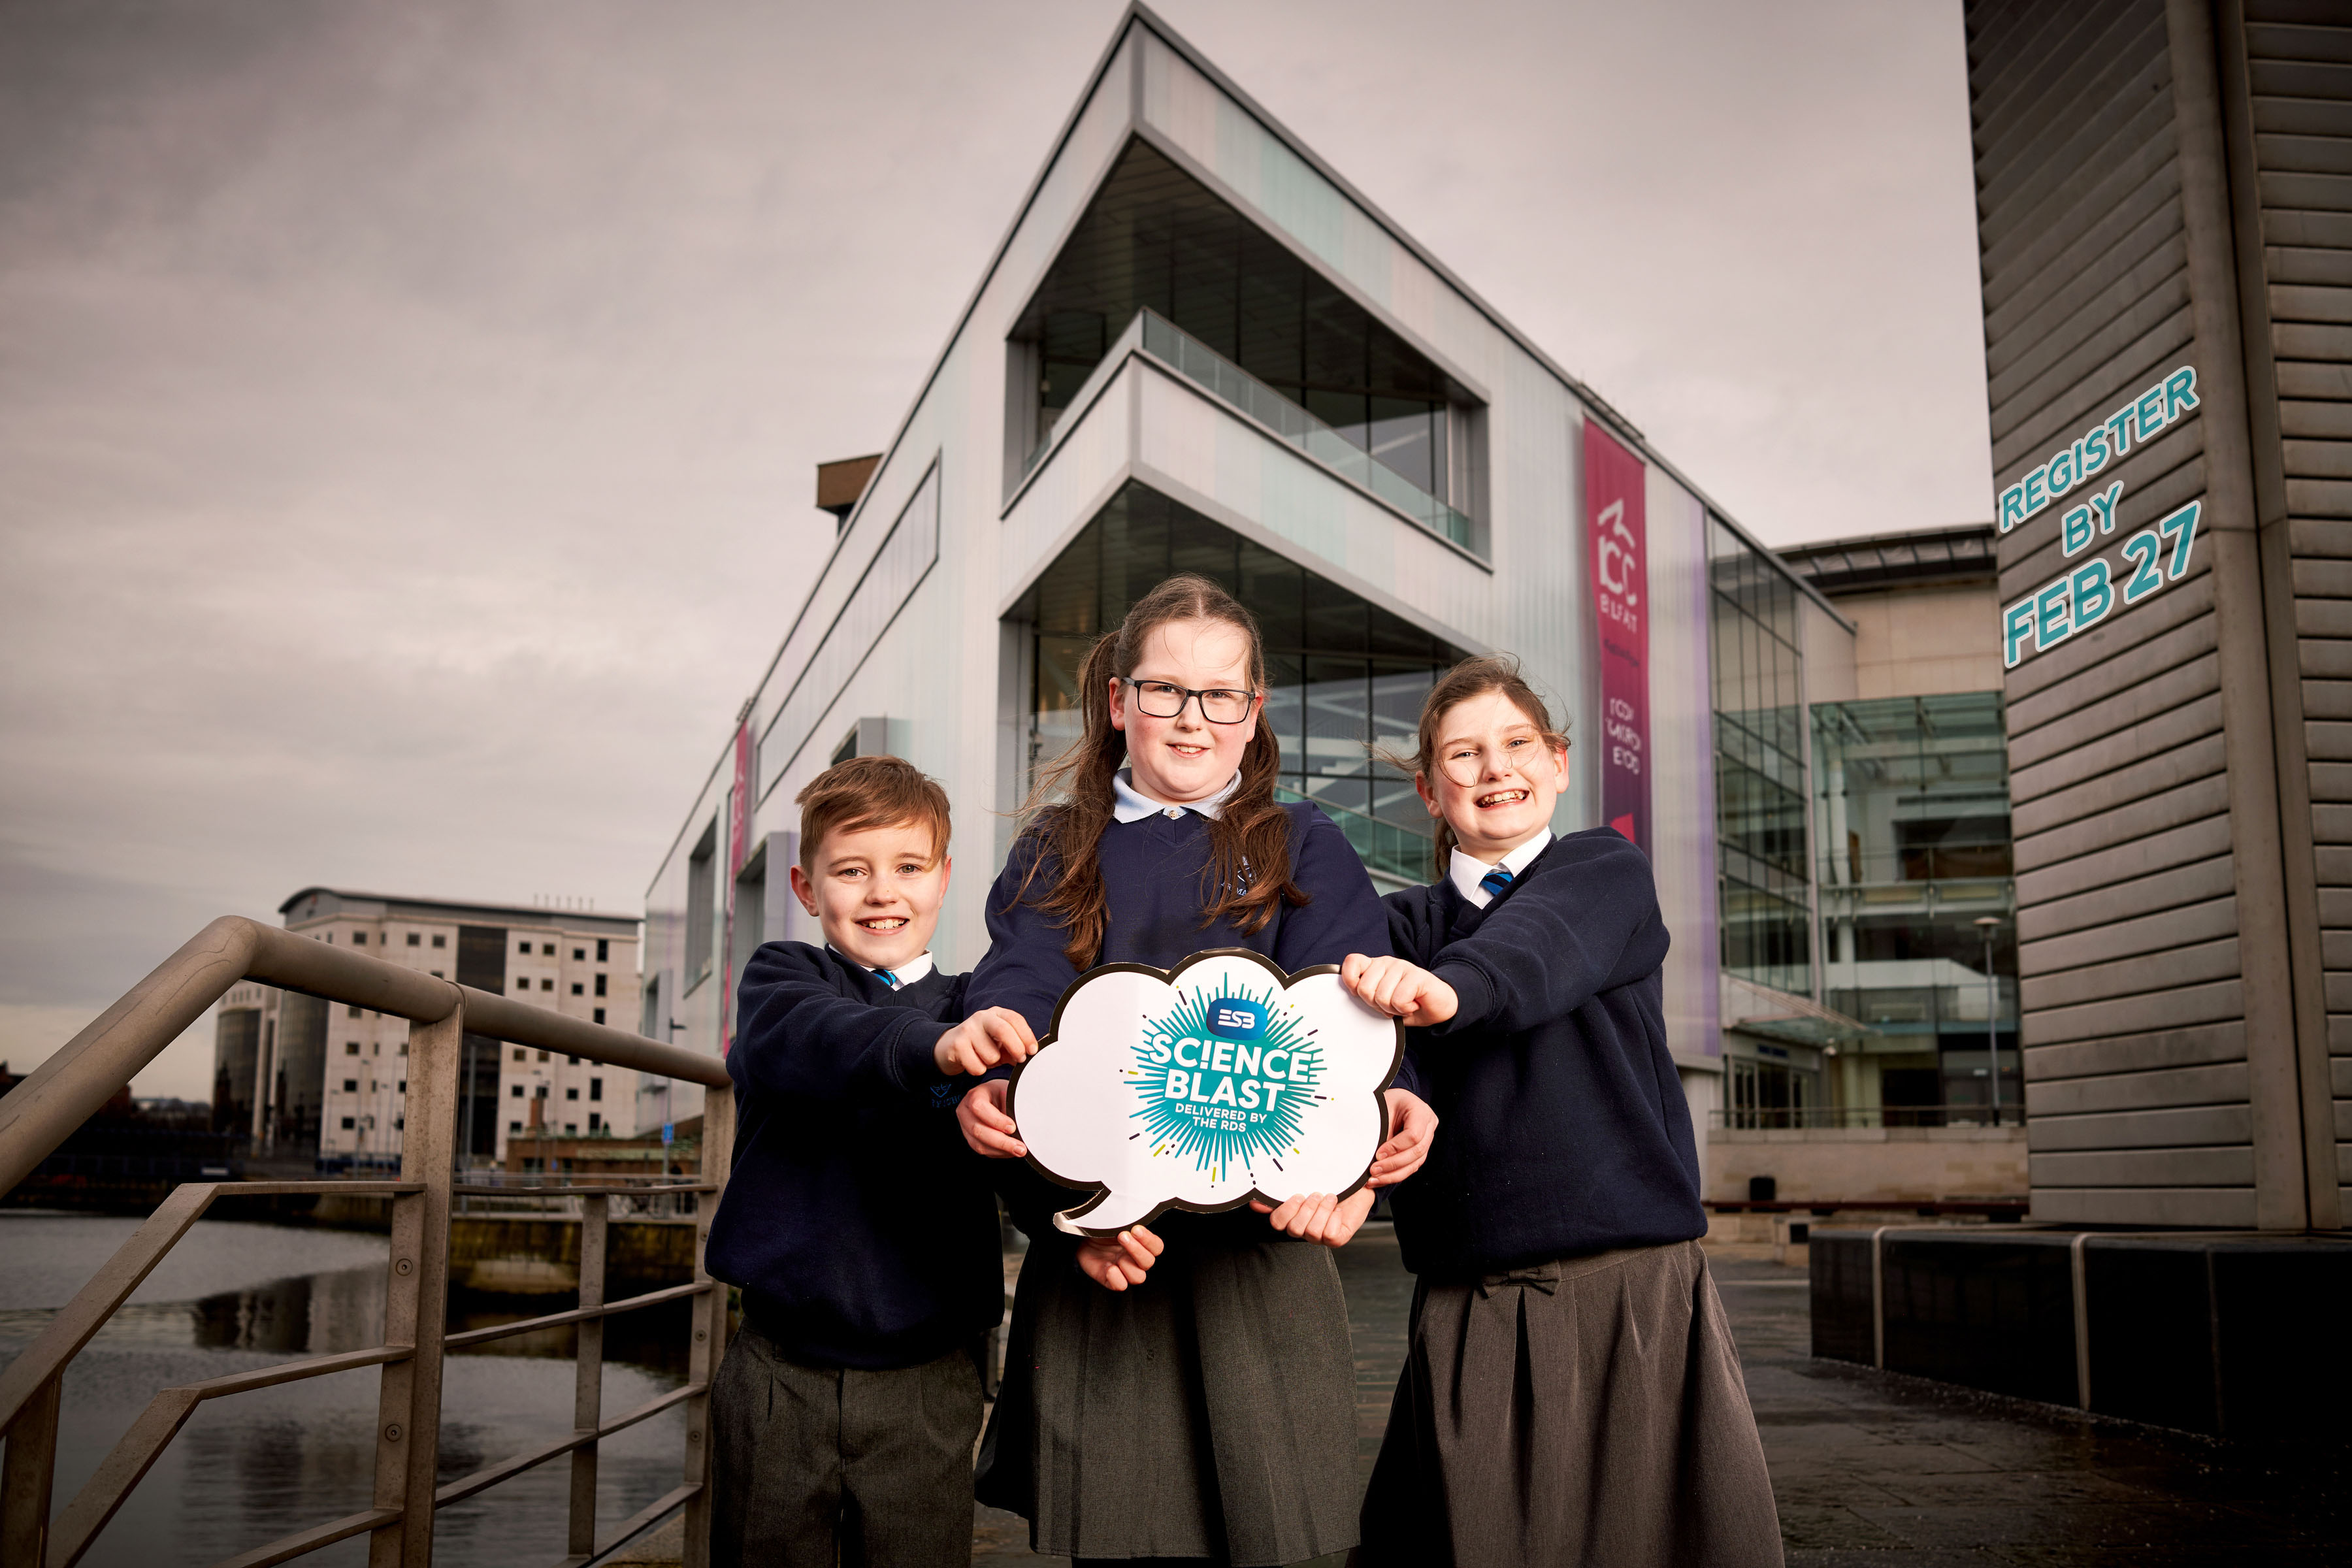 Pupils to Have a BLAST at ESB Science Extravaganza: Max Graham, Jasmine Hayes and Rebecca Logan (L-R) from Dunclug Primary School in Ballymena celebrate one of the biggest science events on the island of Ireland. The ESB Science Blast is coming to Belfast on June 5th and 6th bringing up to 2000 Key Stage 2 pupils together from all over Ulster to display their creative science investigations at the ICC Belfast (Waterfront Hall). Managed and delivered by the Royal Dublin Society (RDS) and endorsed by CCEA (Council for the Curriculum, Examinations and Assessment), this non-competitive education programme calls on primary school students from across the Province to harness their natural curiosity and register their involvement by Wednesday February 27. Schools can find out more information and register for their place at www.esbscienceblast.com.